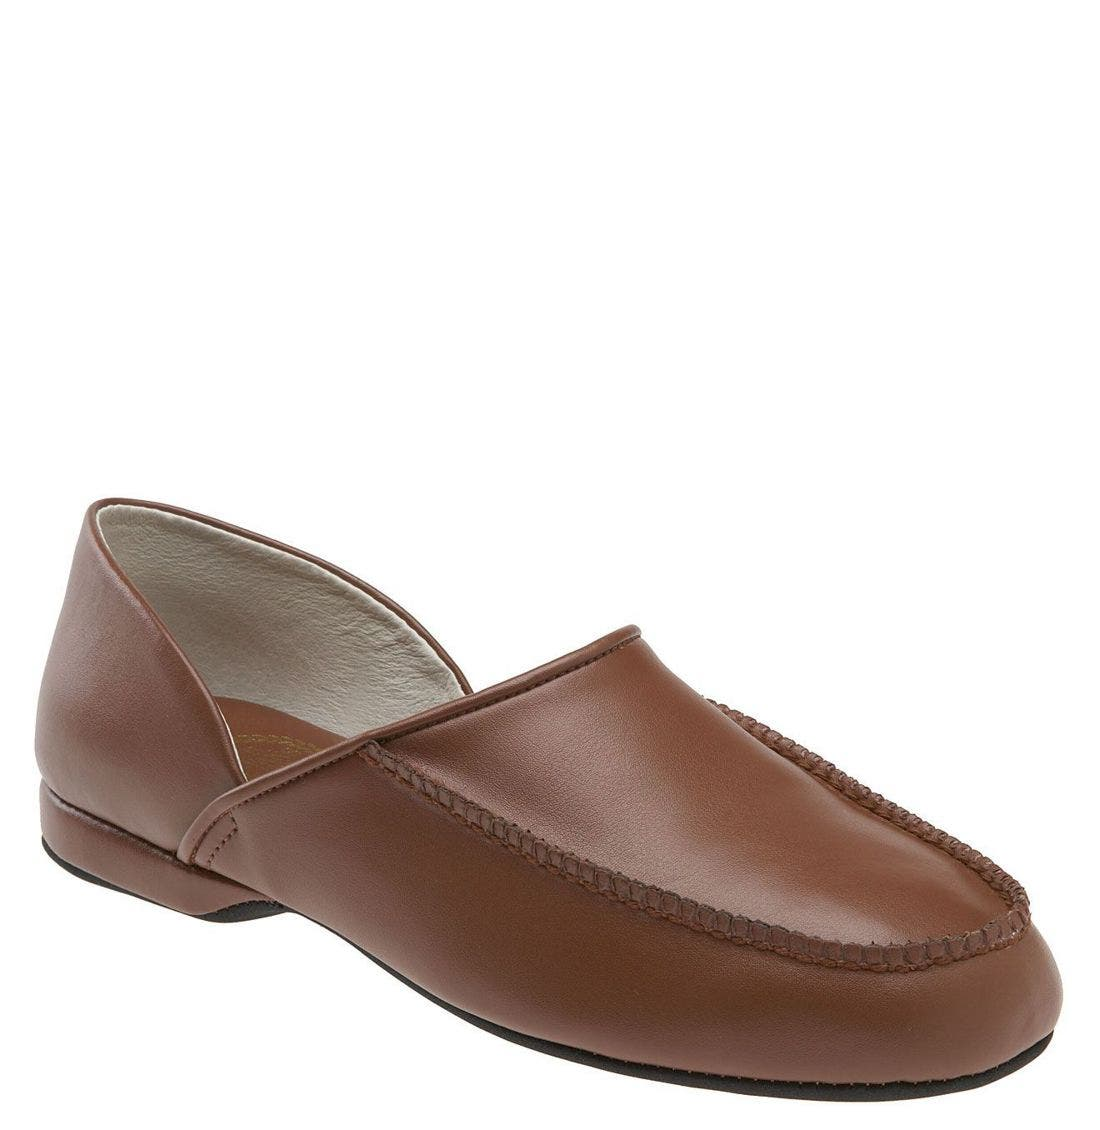 Alternate Image 1 Selected - L.B. Evans 'Chicopee®' Slipper (Online Only)